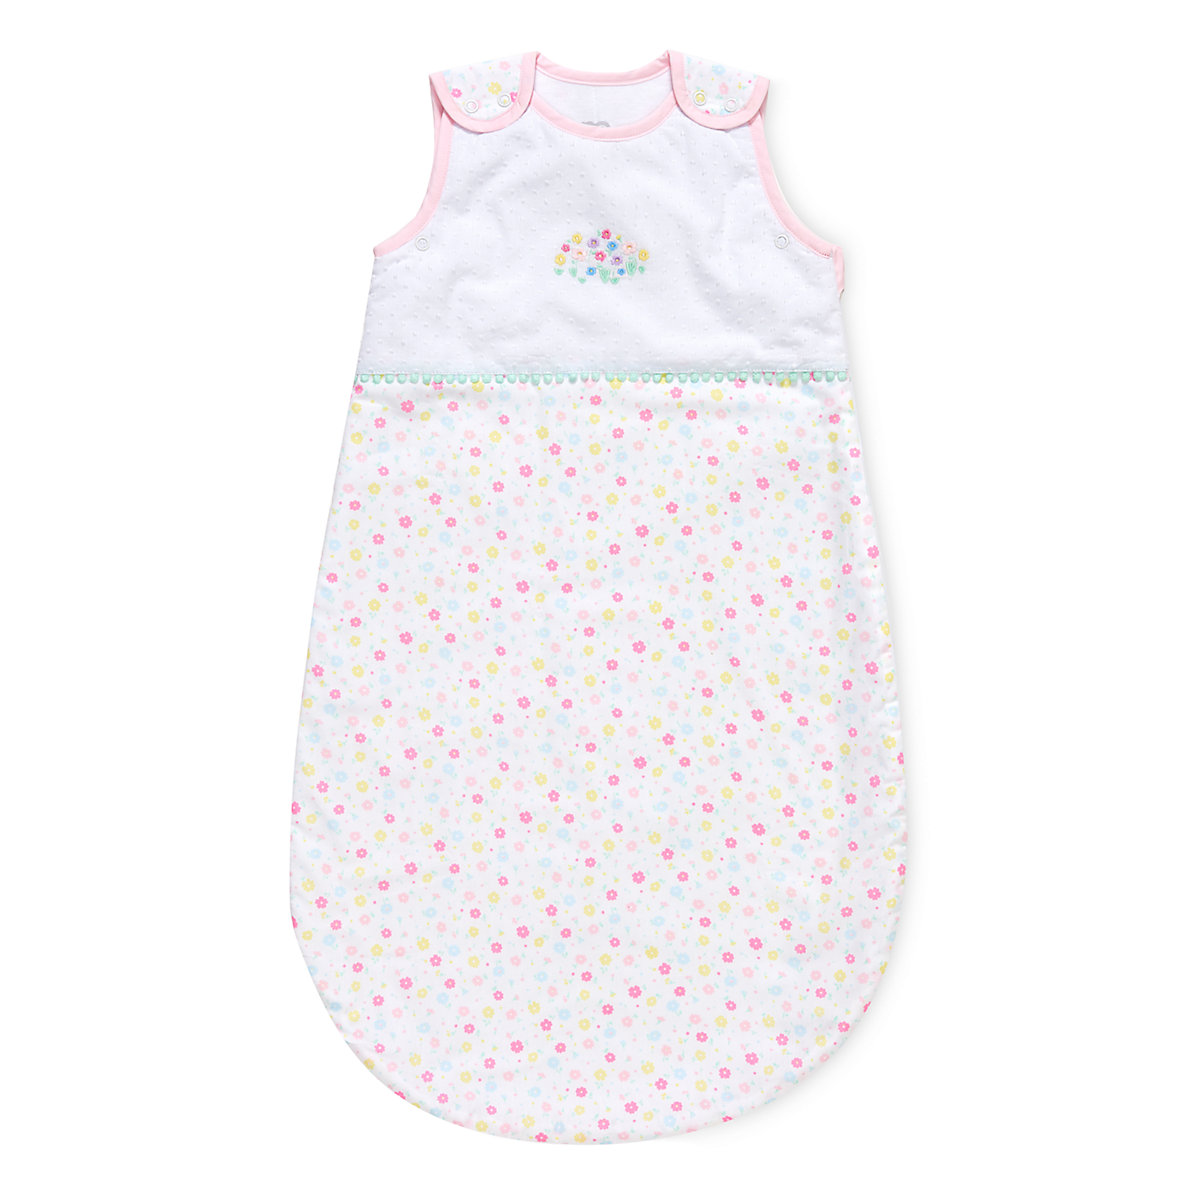 confetti party 0-6 months snoozie sleep bag - 1 tog